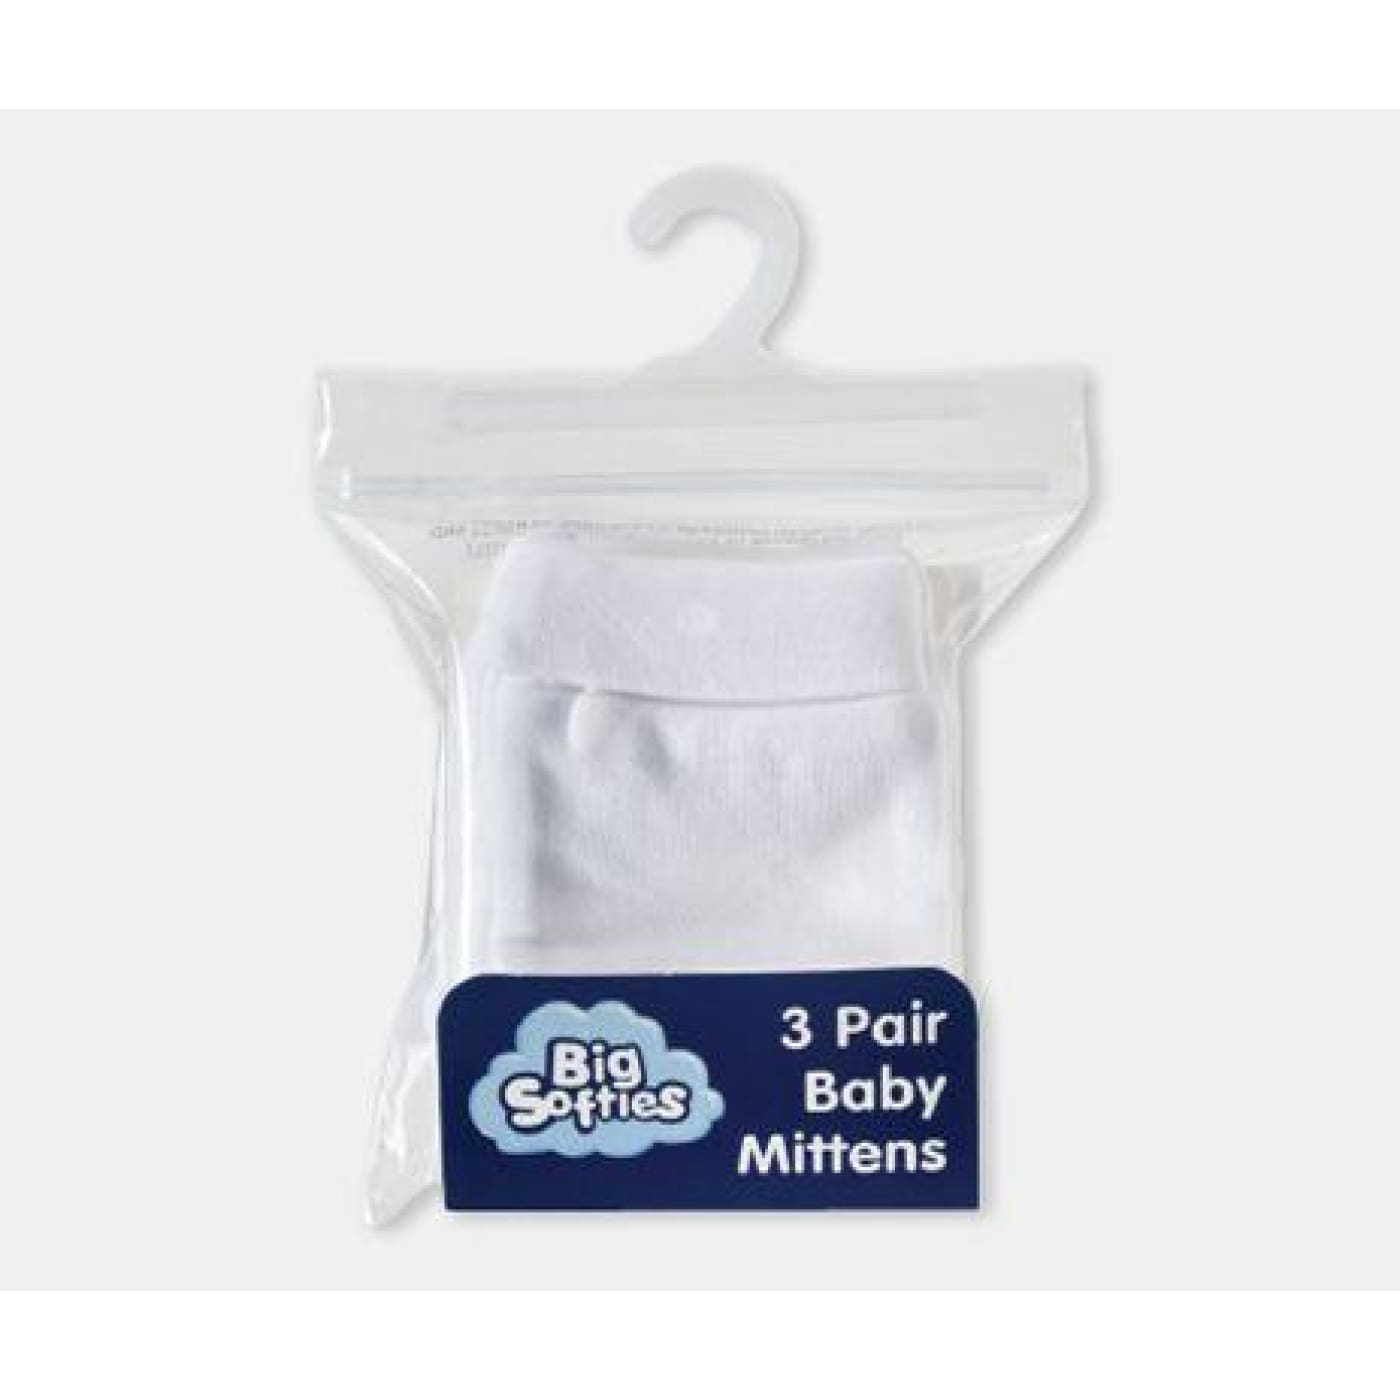 BIG SOFTIES Mittens WHITE 3PK - BABY & TODDLER CLOTHING - MITTENS/SOCKS/SHOES